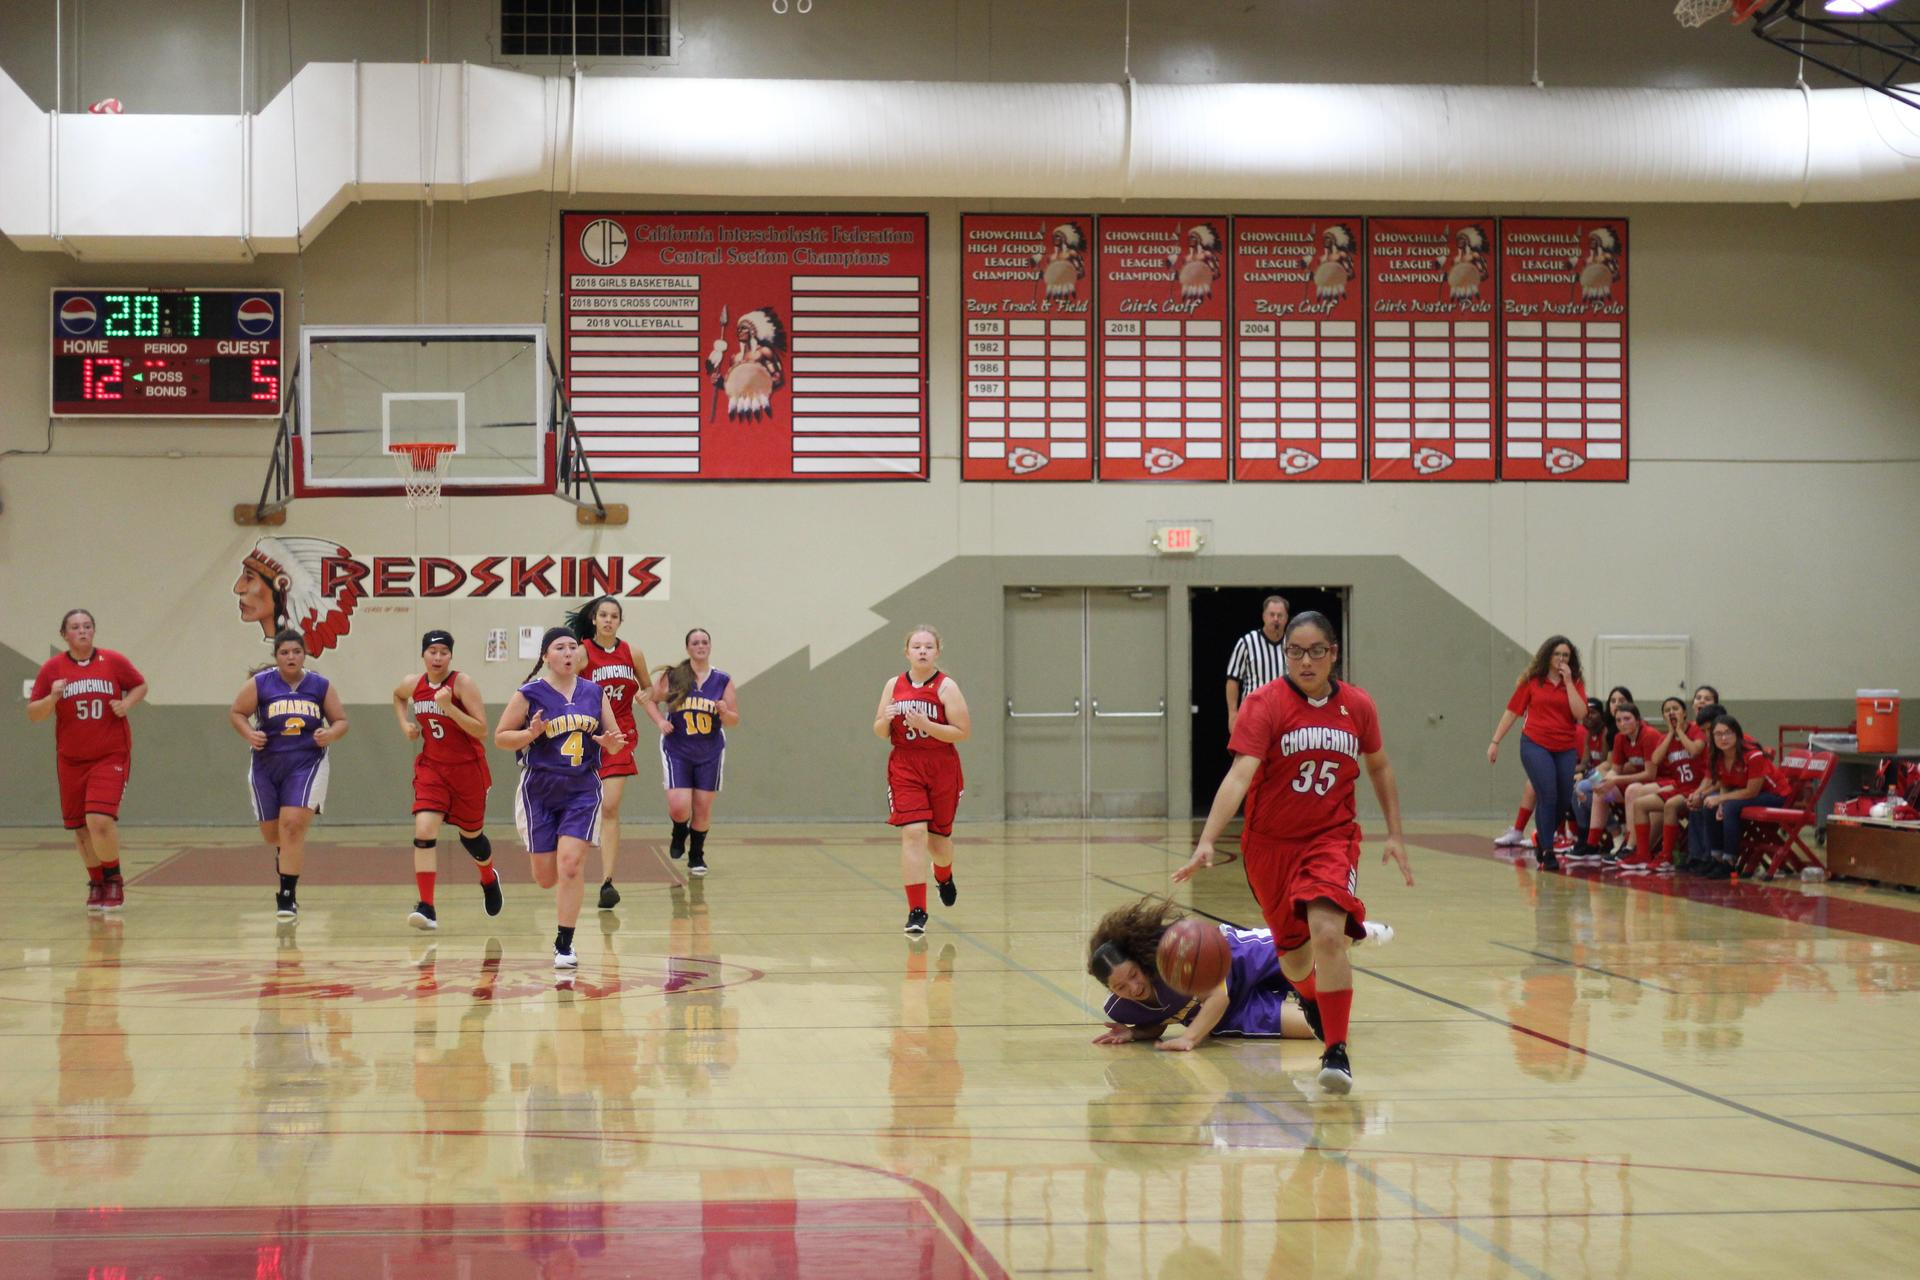 girls playing basketball against Minarets